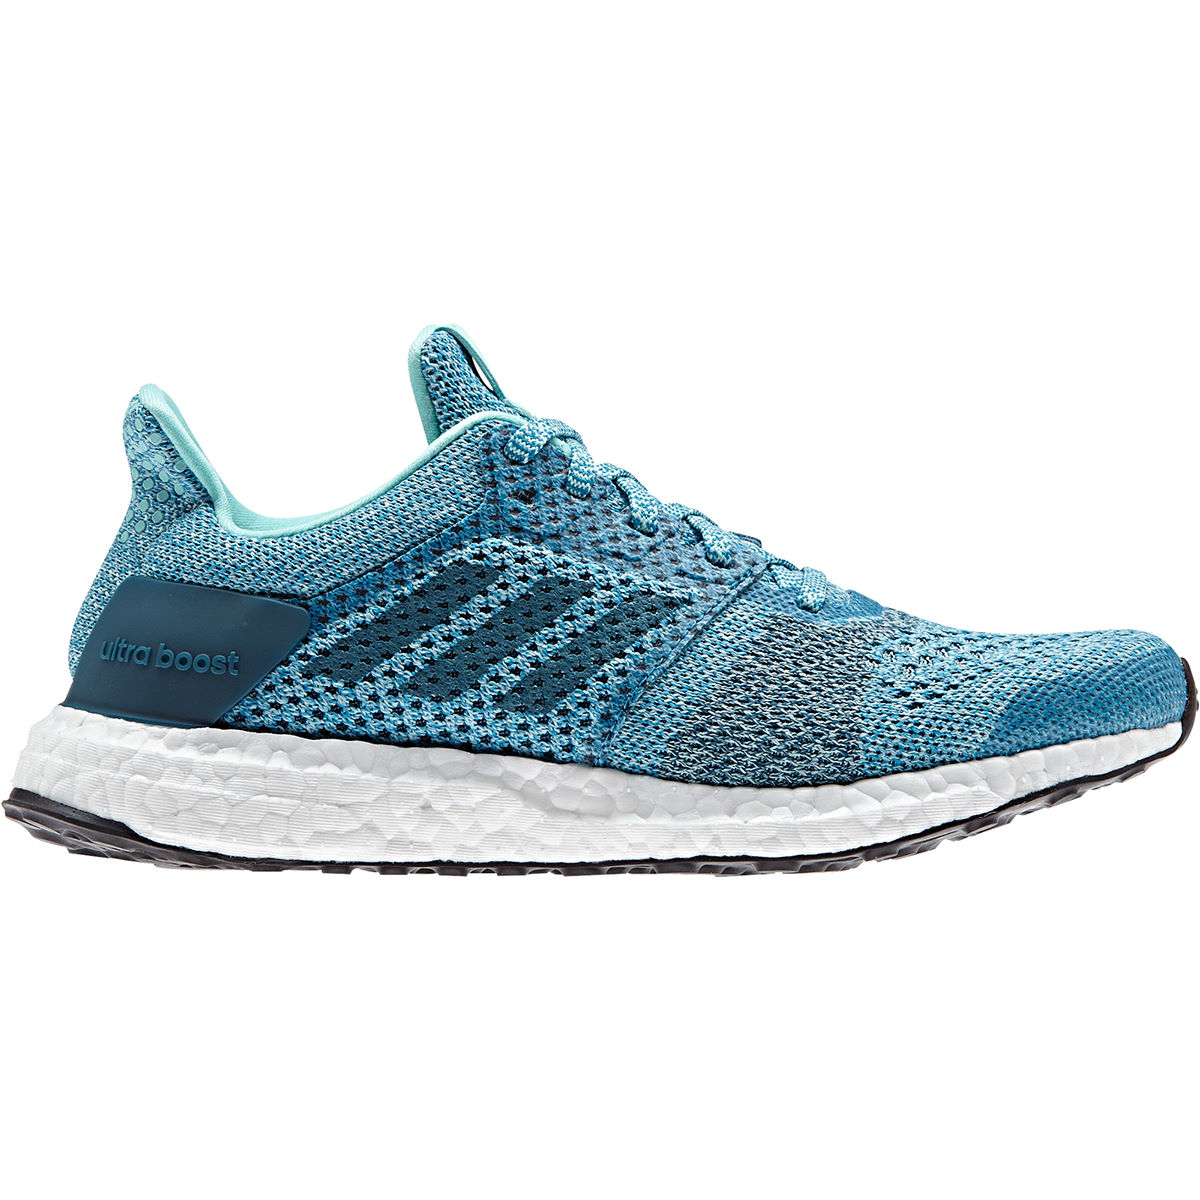 Adidas Ultraboost Women S Running Shoes Aw